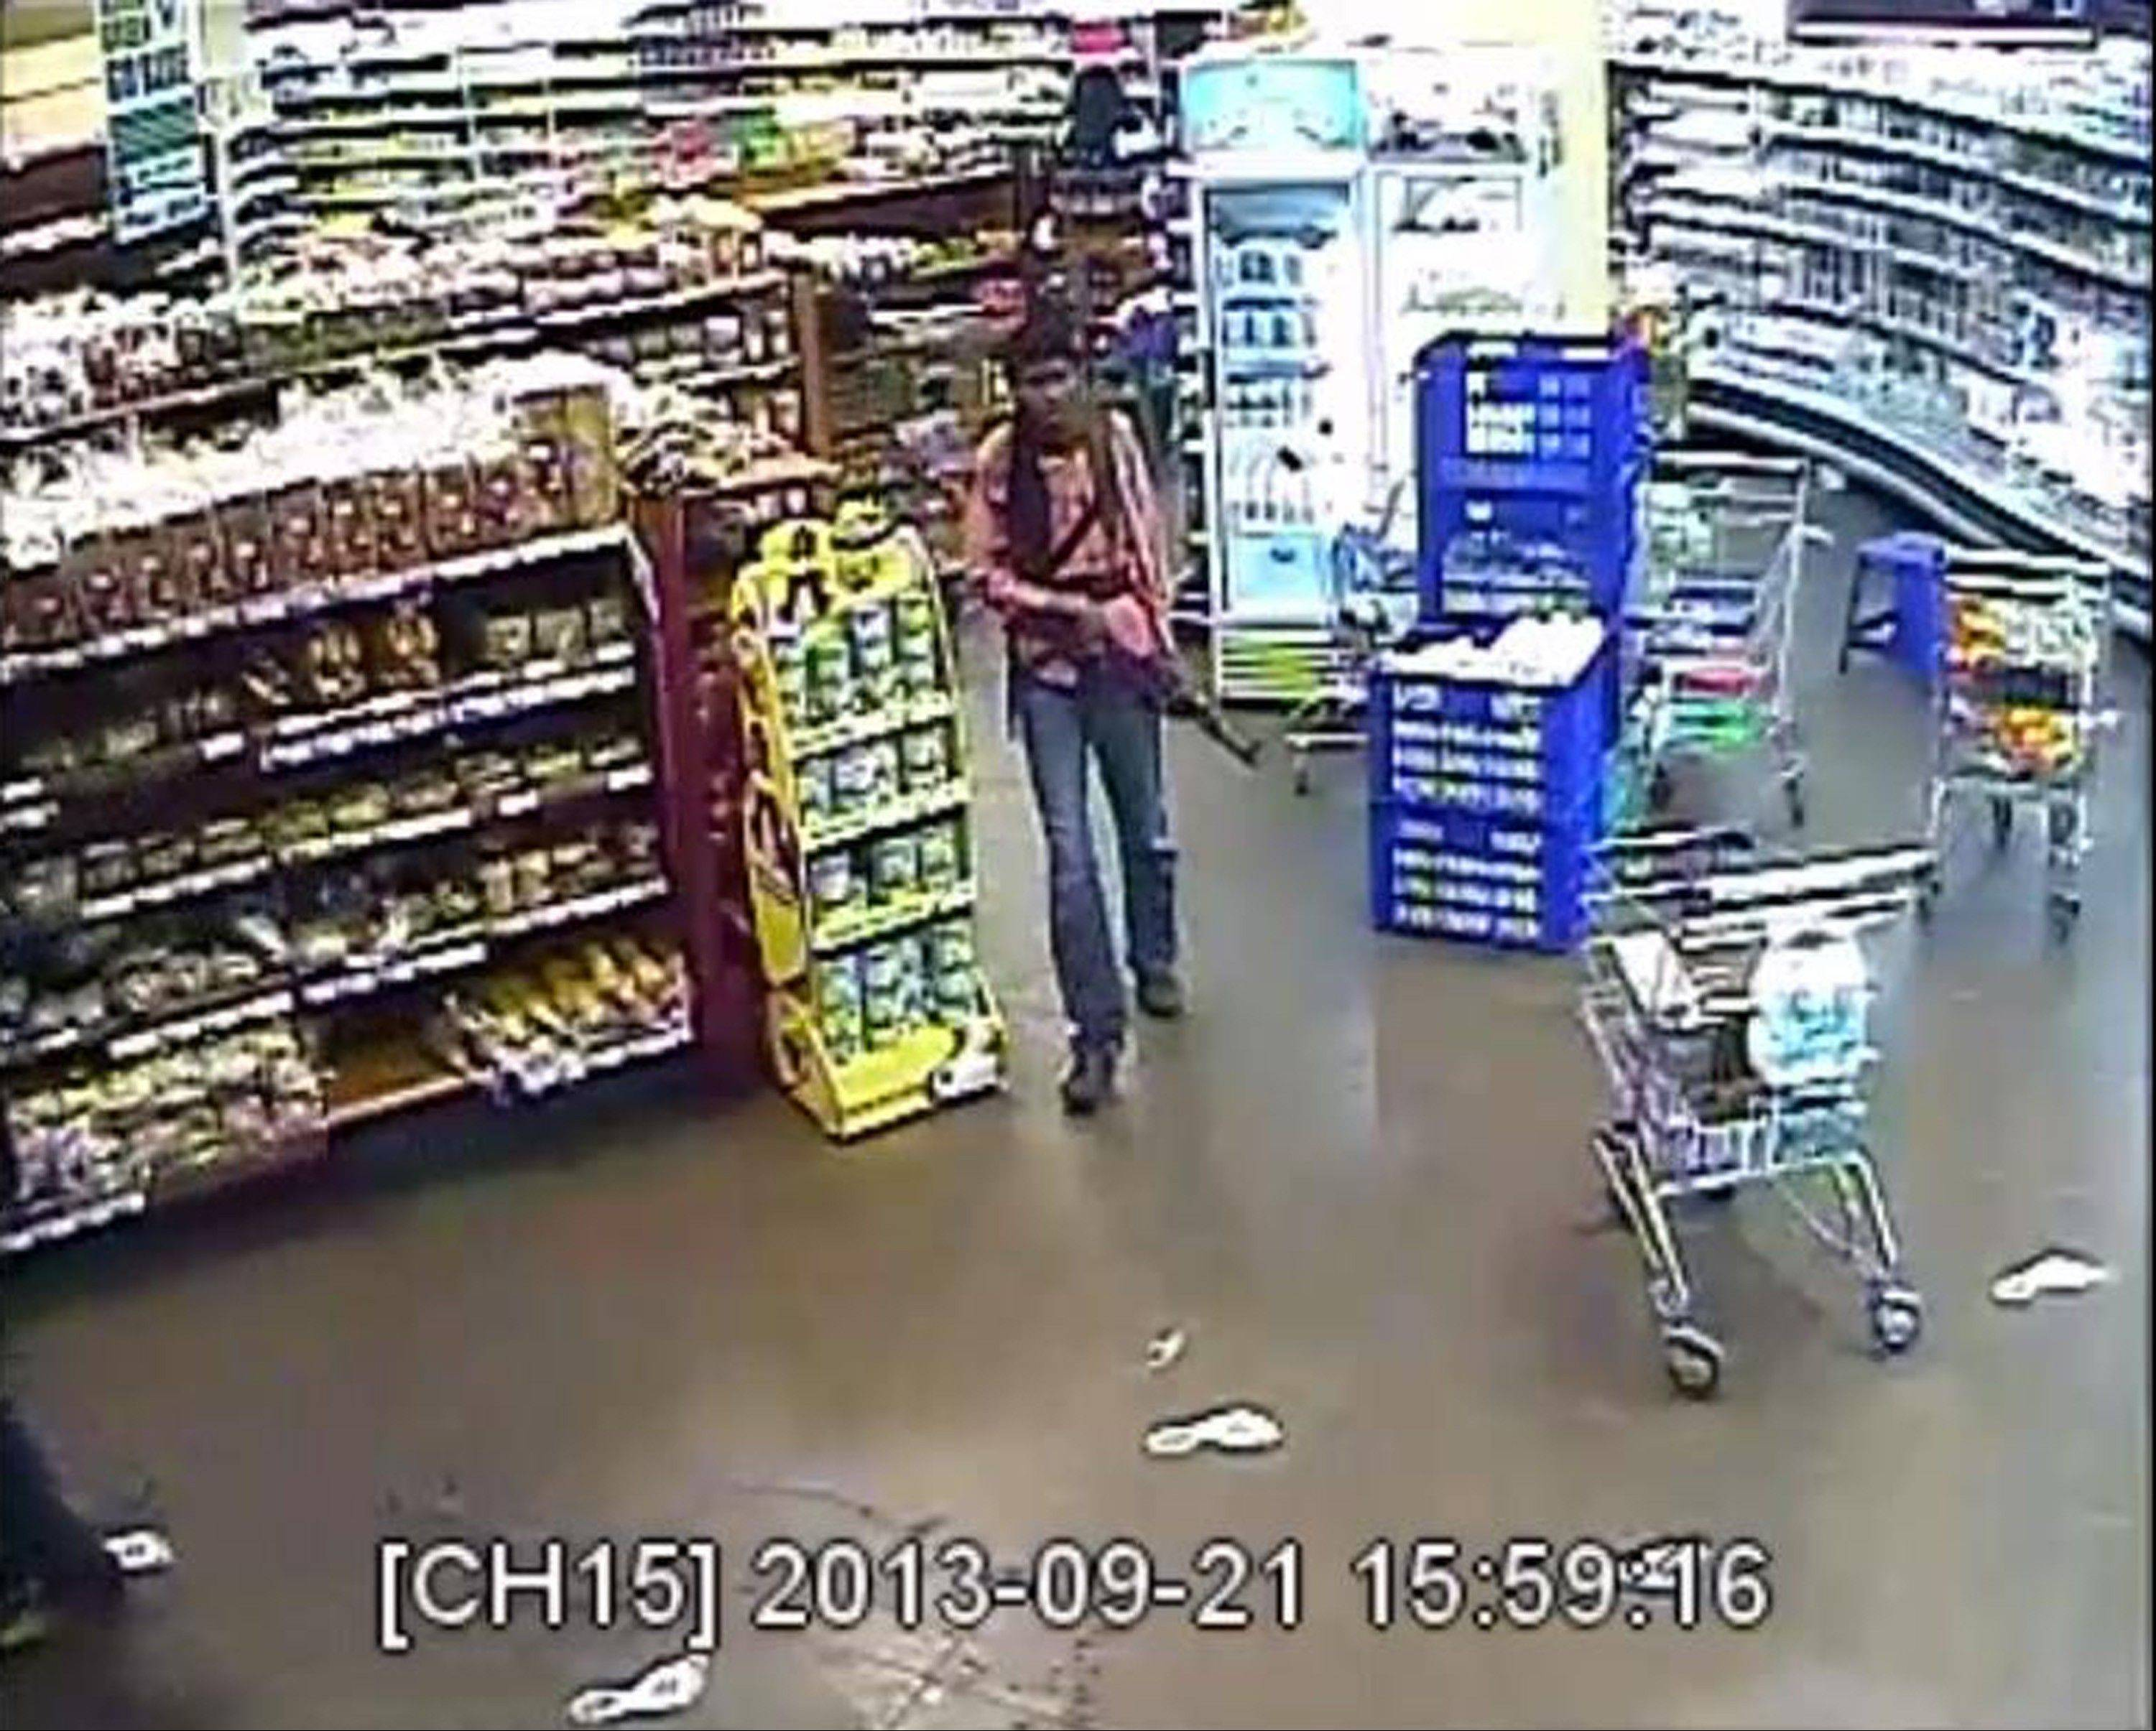 In this photo taken from footage from Citizen TV, via the Kenya Defence Forces and made available Friday, Oct. 4, a man reported to be Umayr, one of the four armed militants walking in a store at the Westgate Mall, during the four-day-long siege at the mall in Nairobi, Kenya that killed more than 60 people last month. A Kenyan military spokesman has confirmed the names of four attackers as Abu Baara al-Sudani, Omar Nabhan, Khattab al-Kene and Umayr.